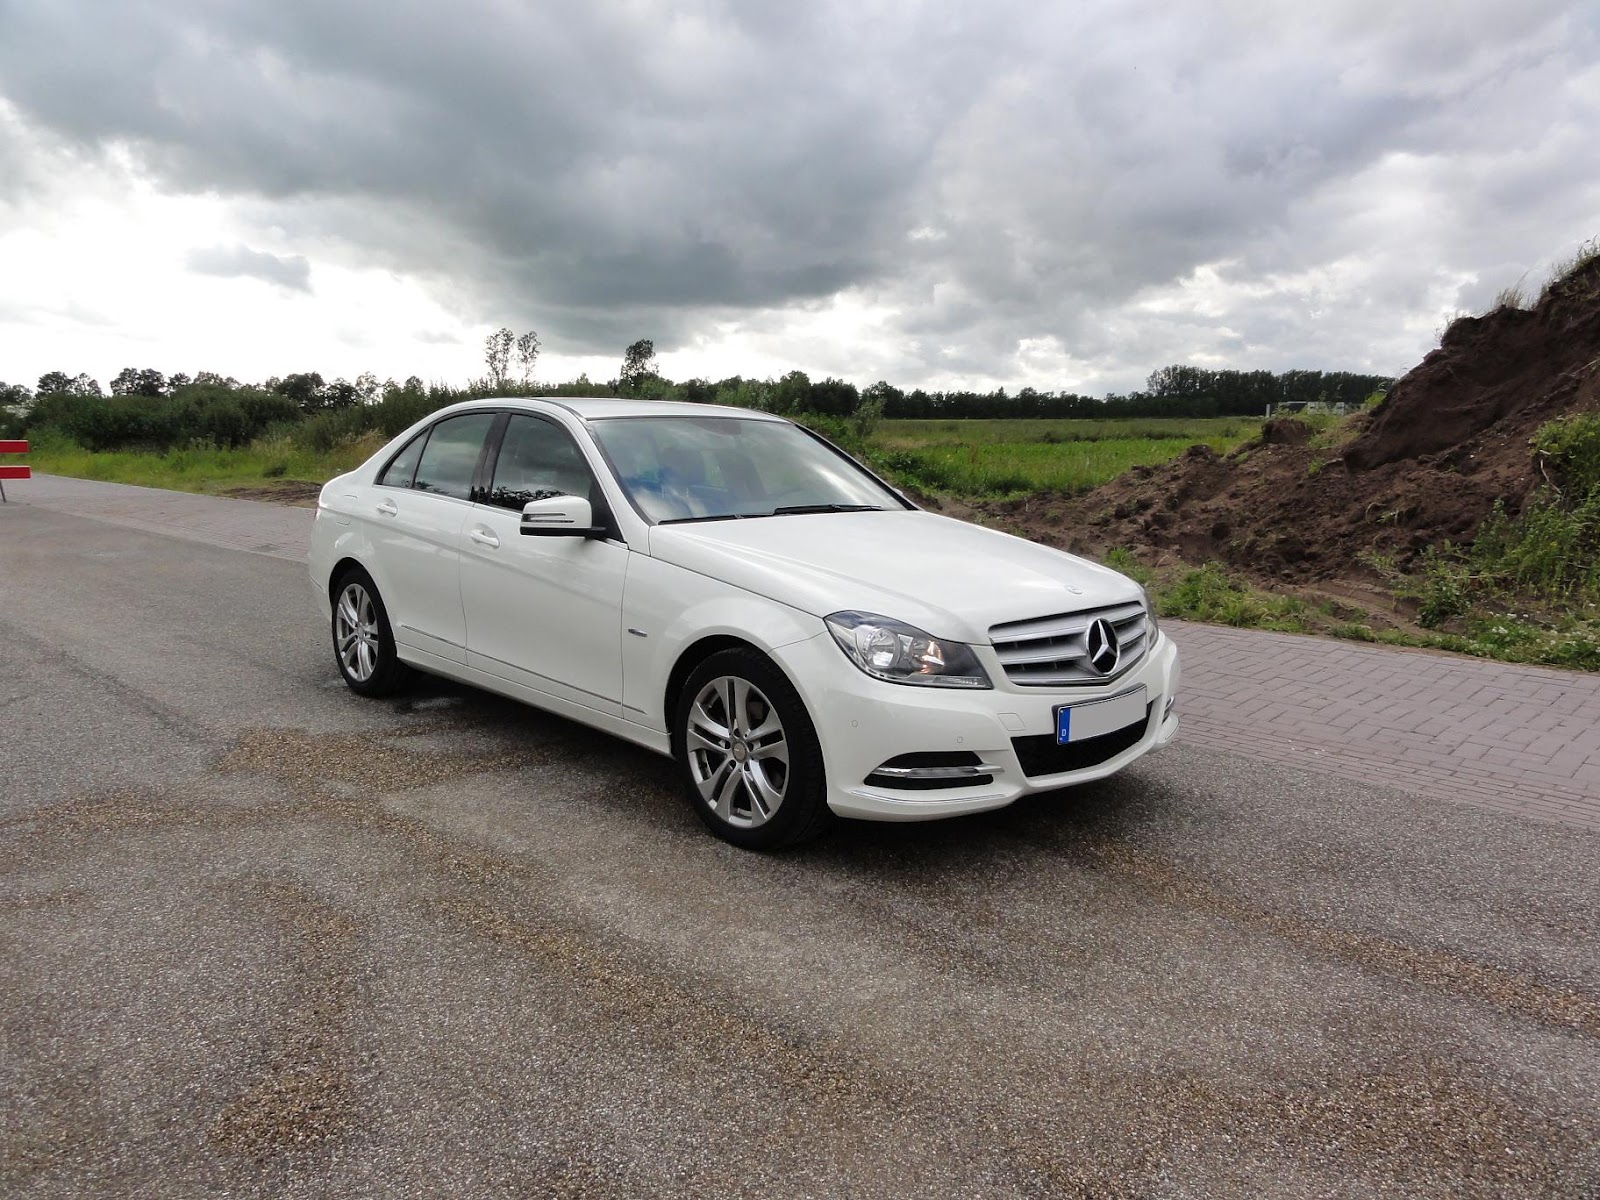 Mercedes-benz c180 photo - 5